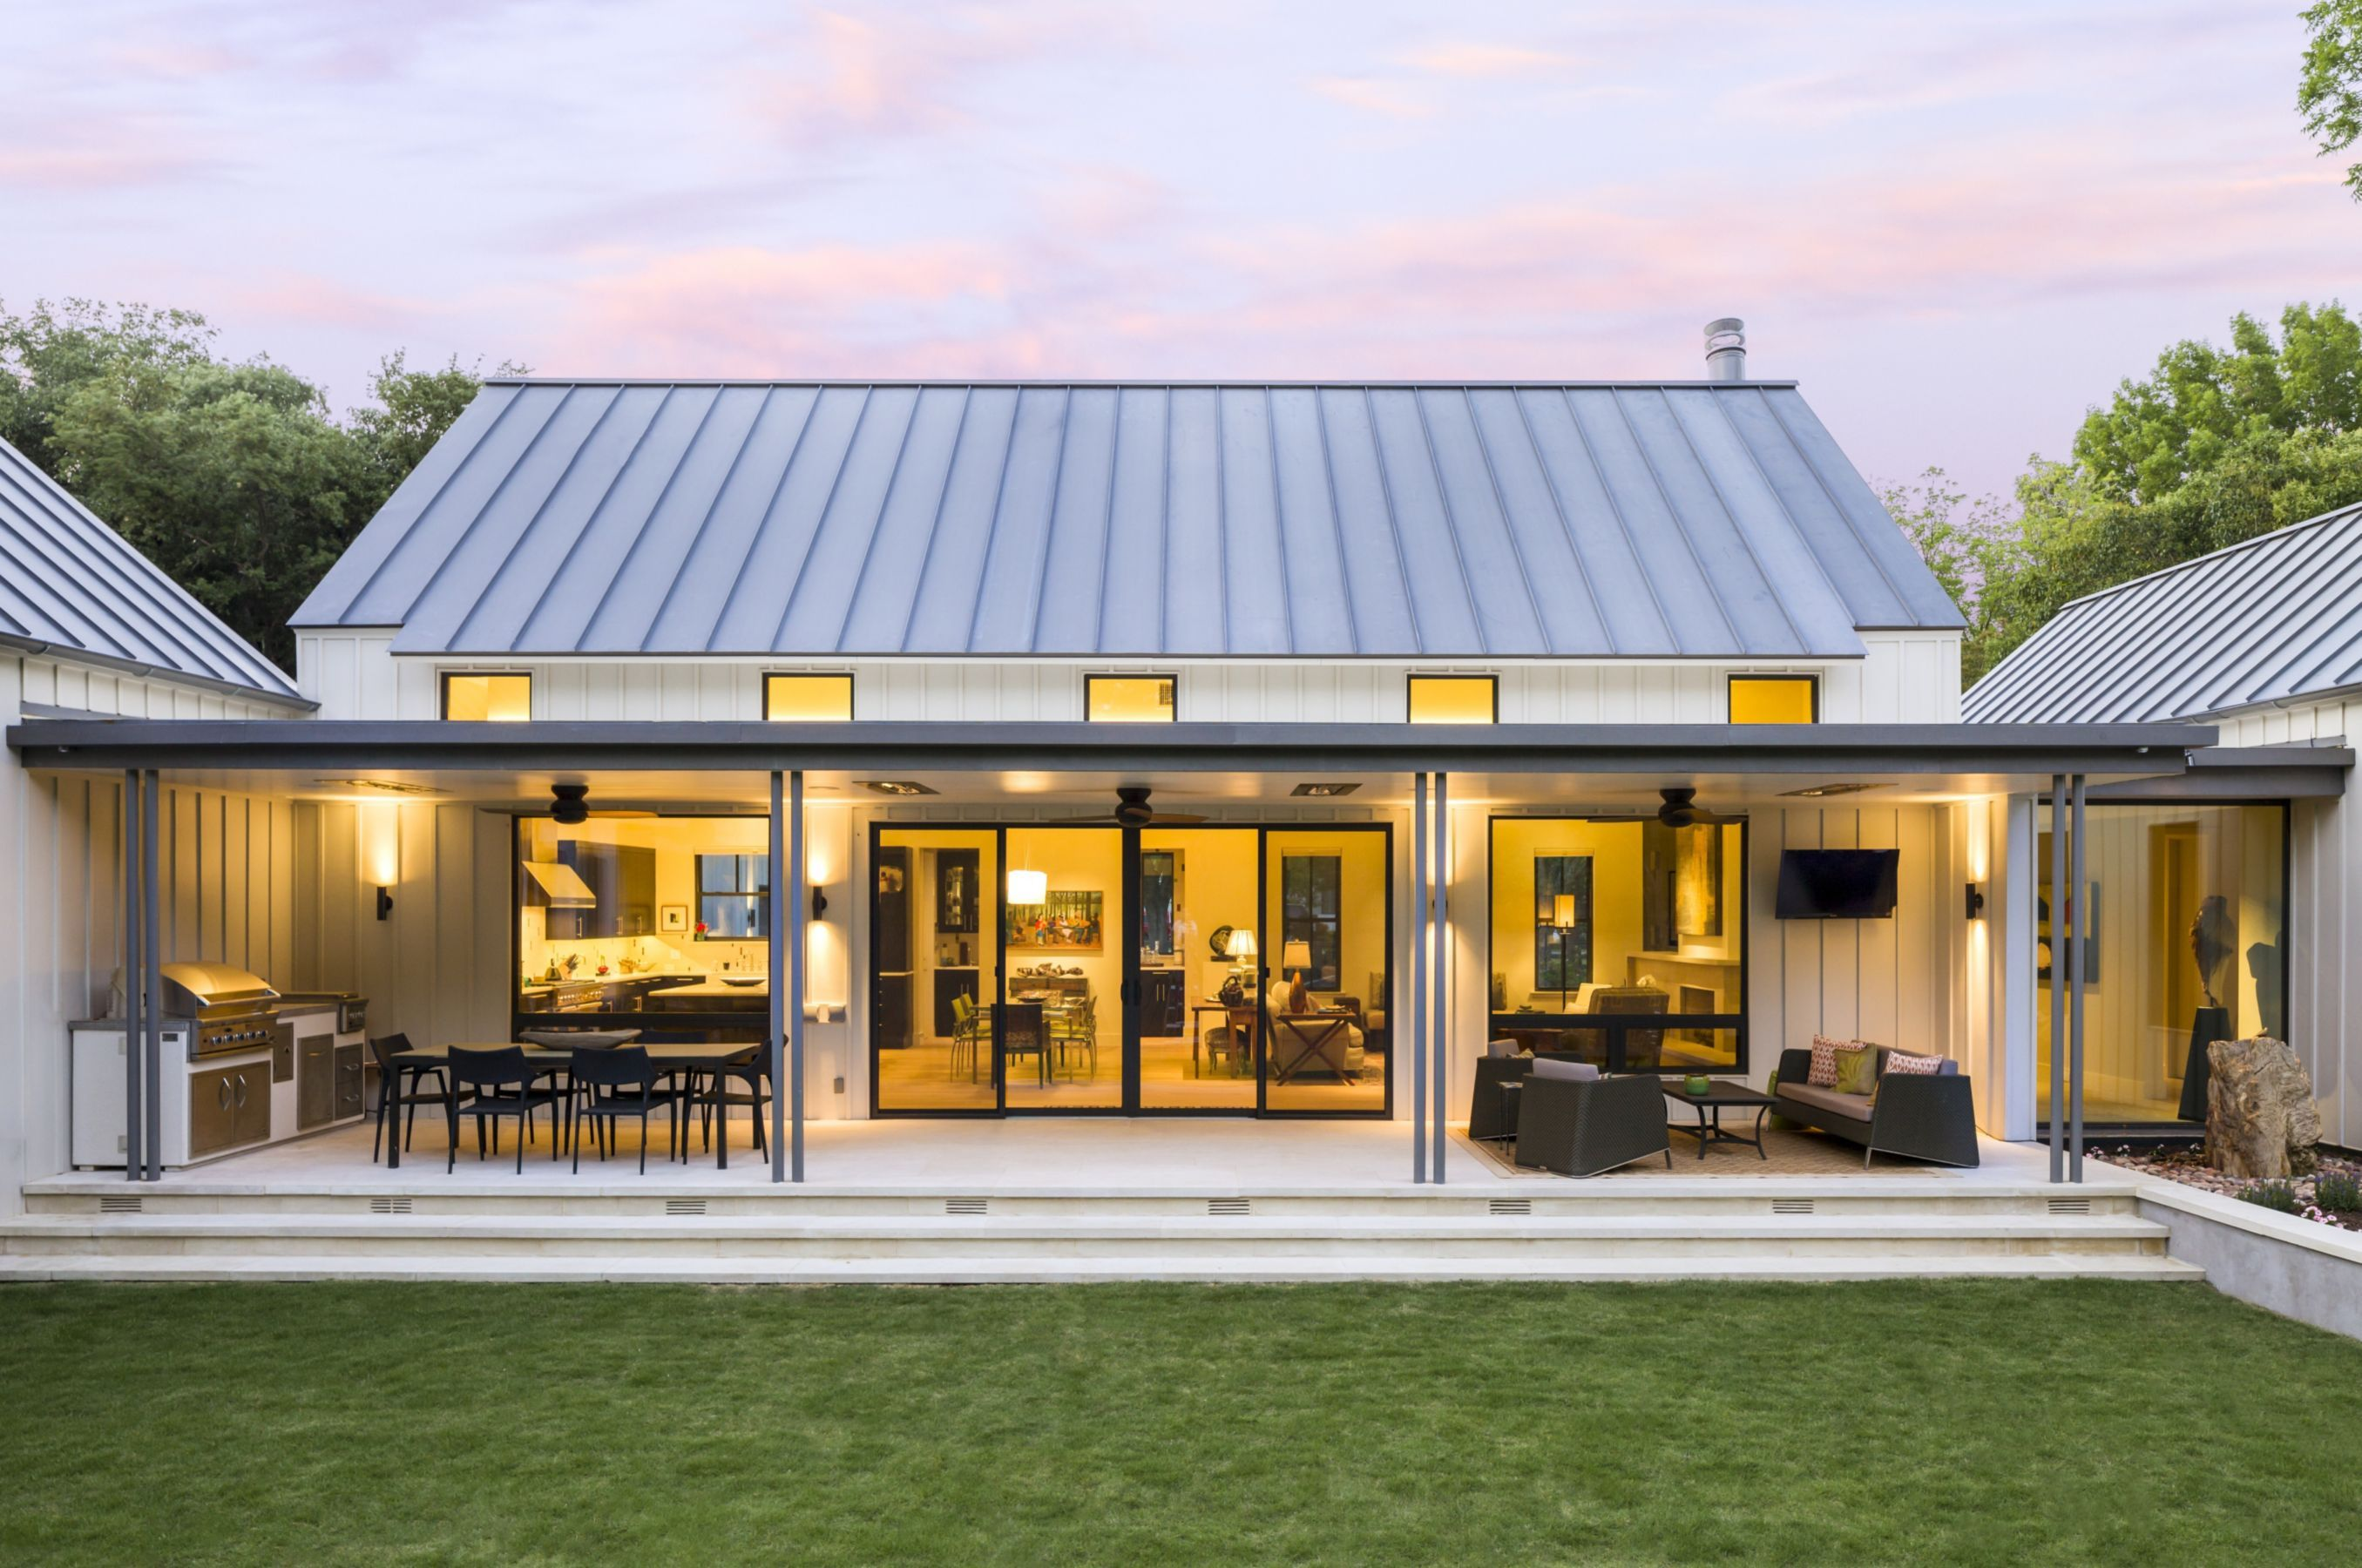 H shaped house back area makes private courtyard  floorplans  Modern farmhouse exterior